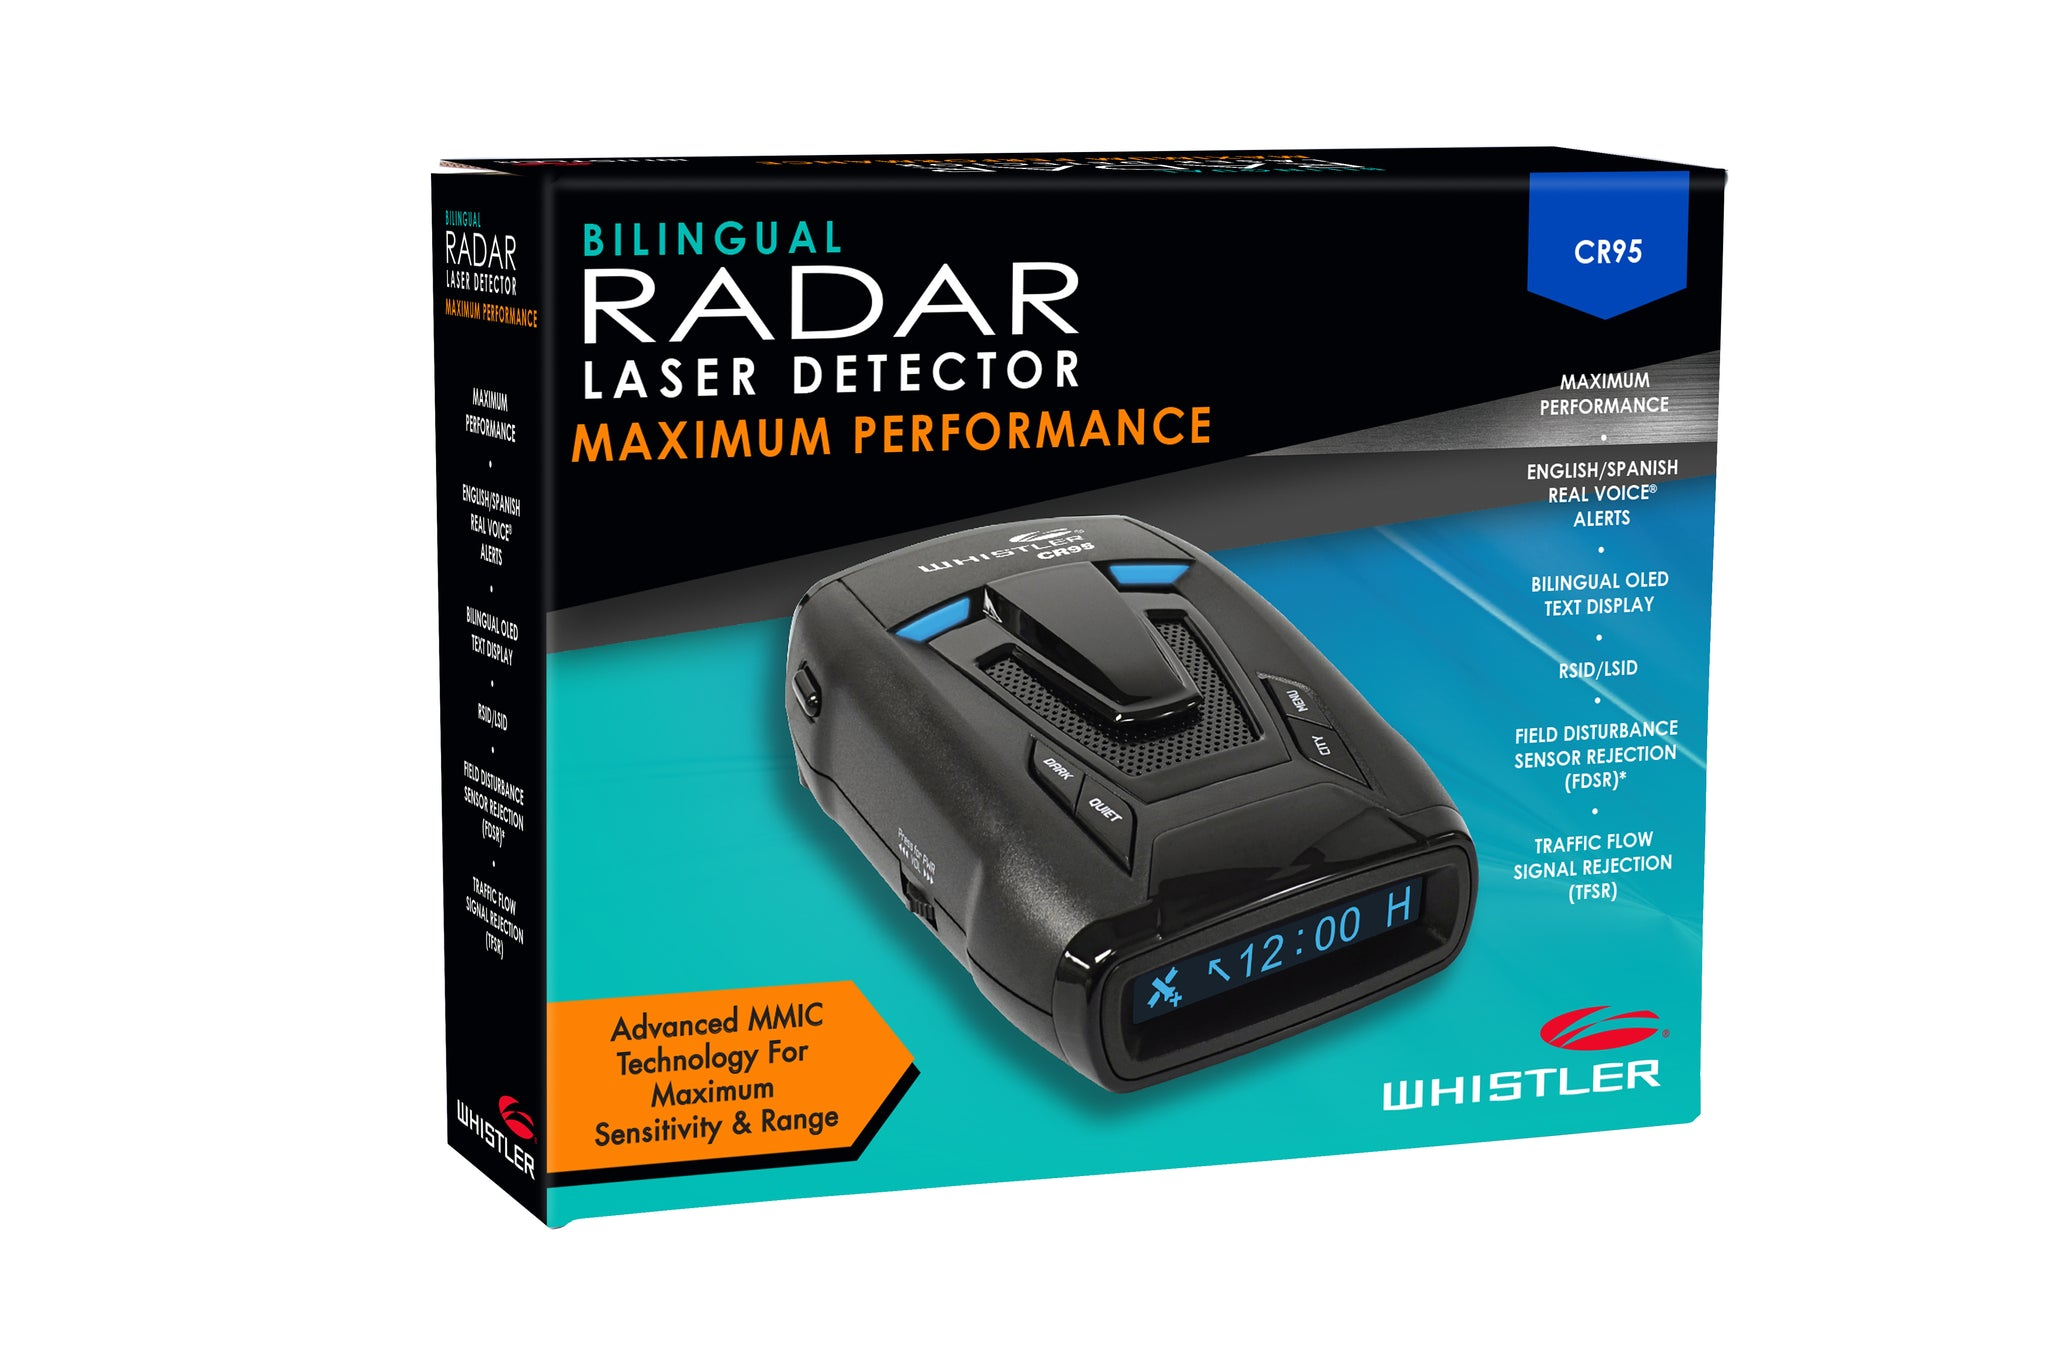 Whistler CR95 Maximum Performance Laser Radar Detector Bilingual Voice Alerts and Text Display 360 Degree Protection